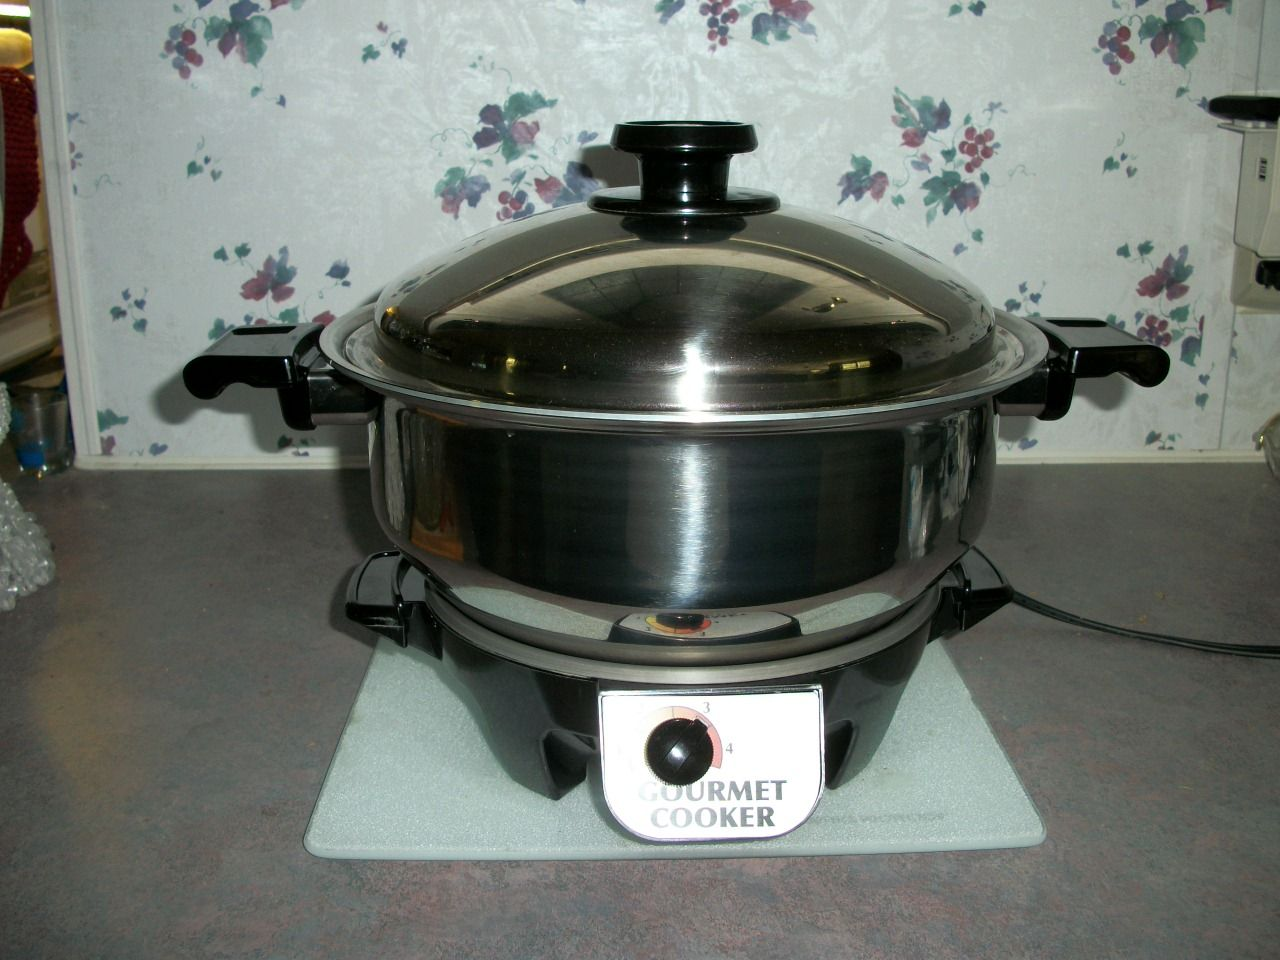 The six-quart Gourmet Cooker by Kitchen Craft Cookware in ...